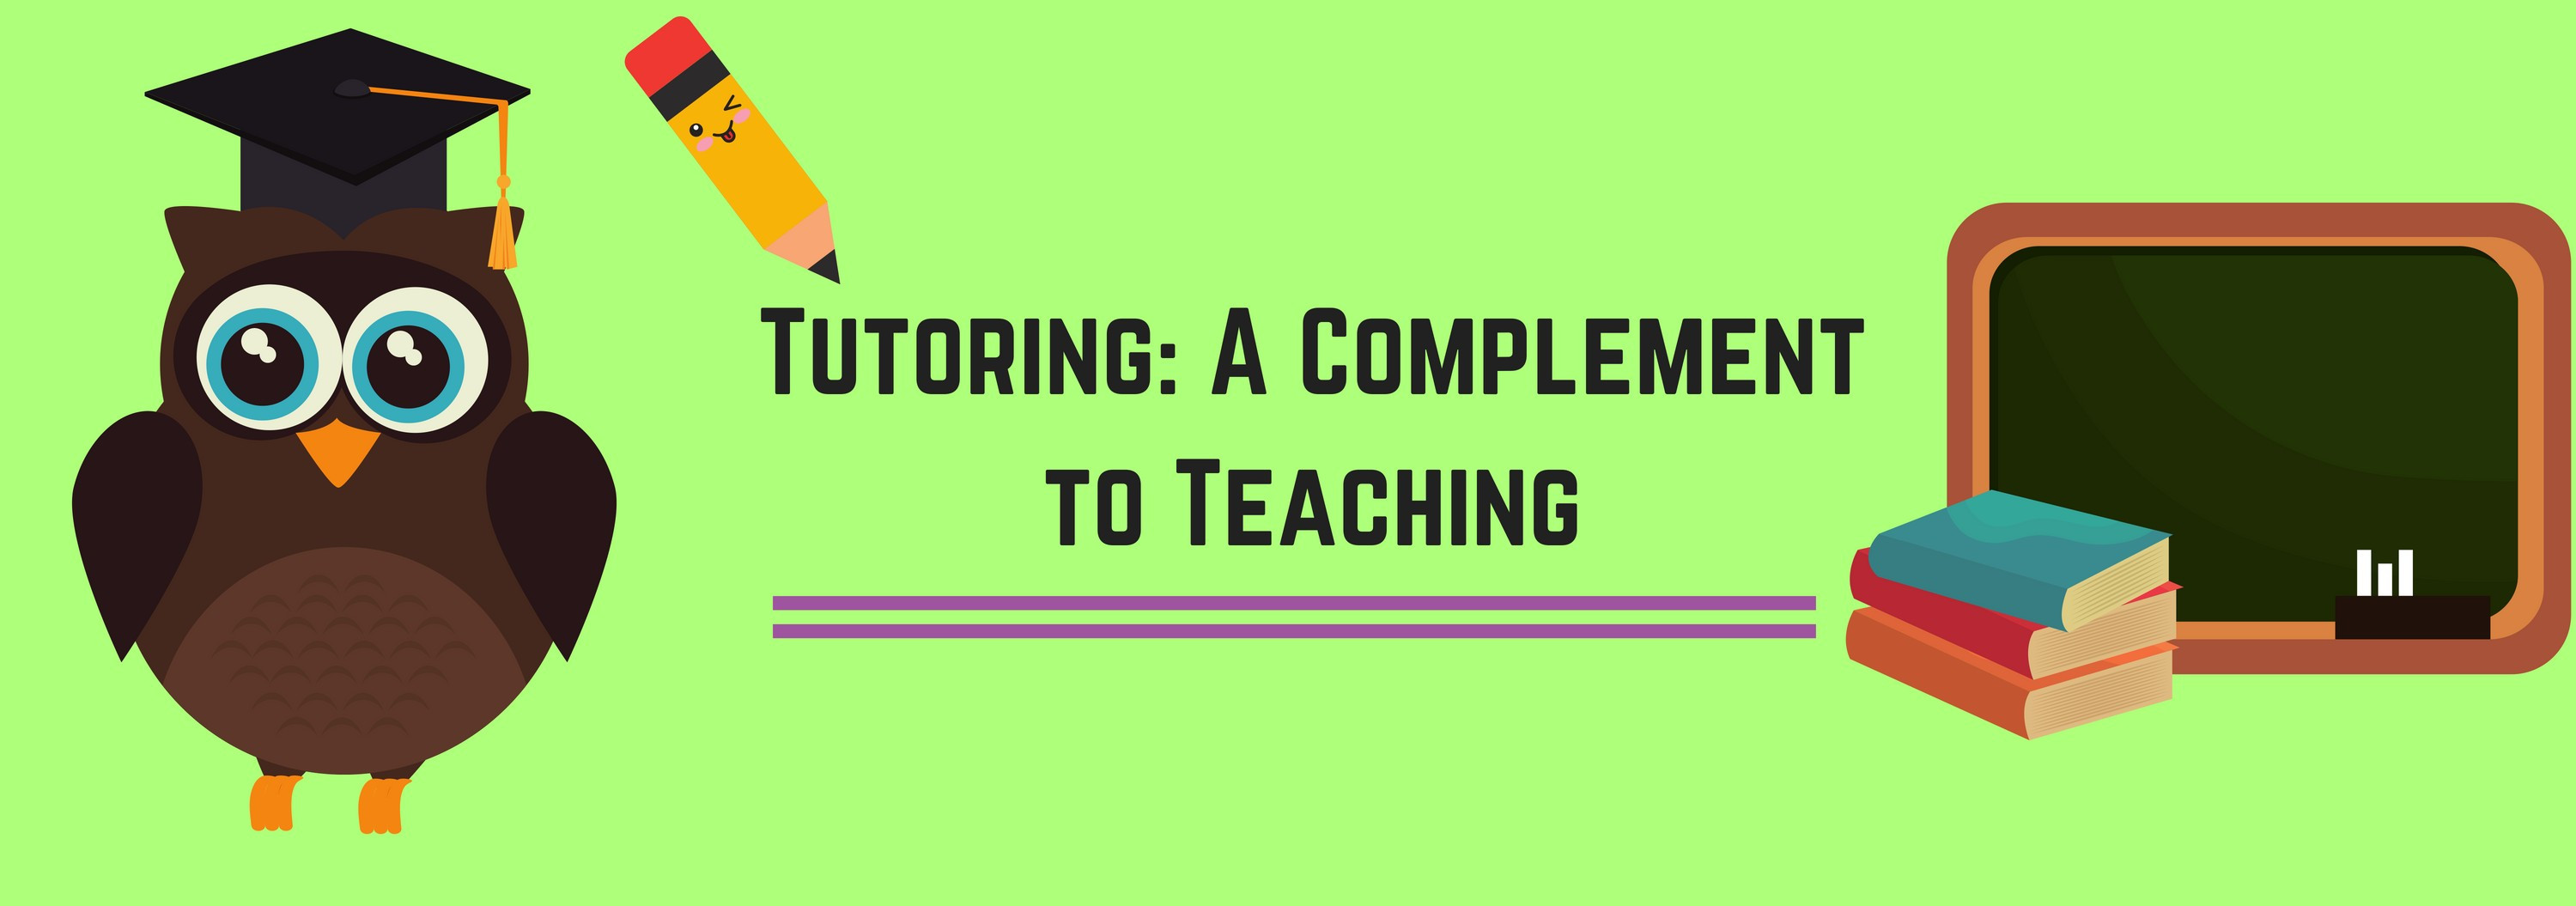 Tutoring: A Complement to Teaching